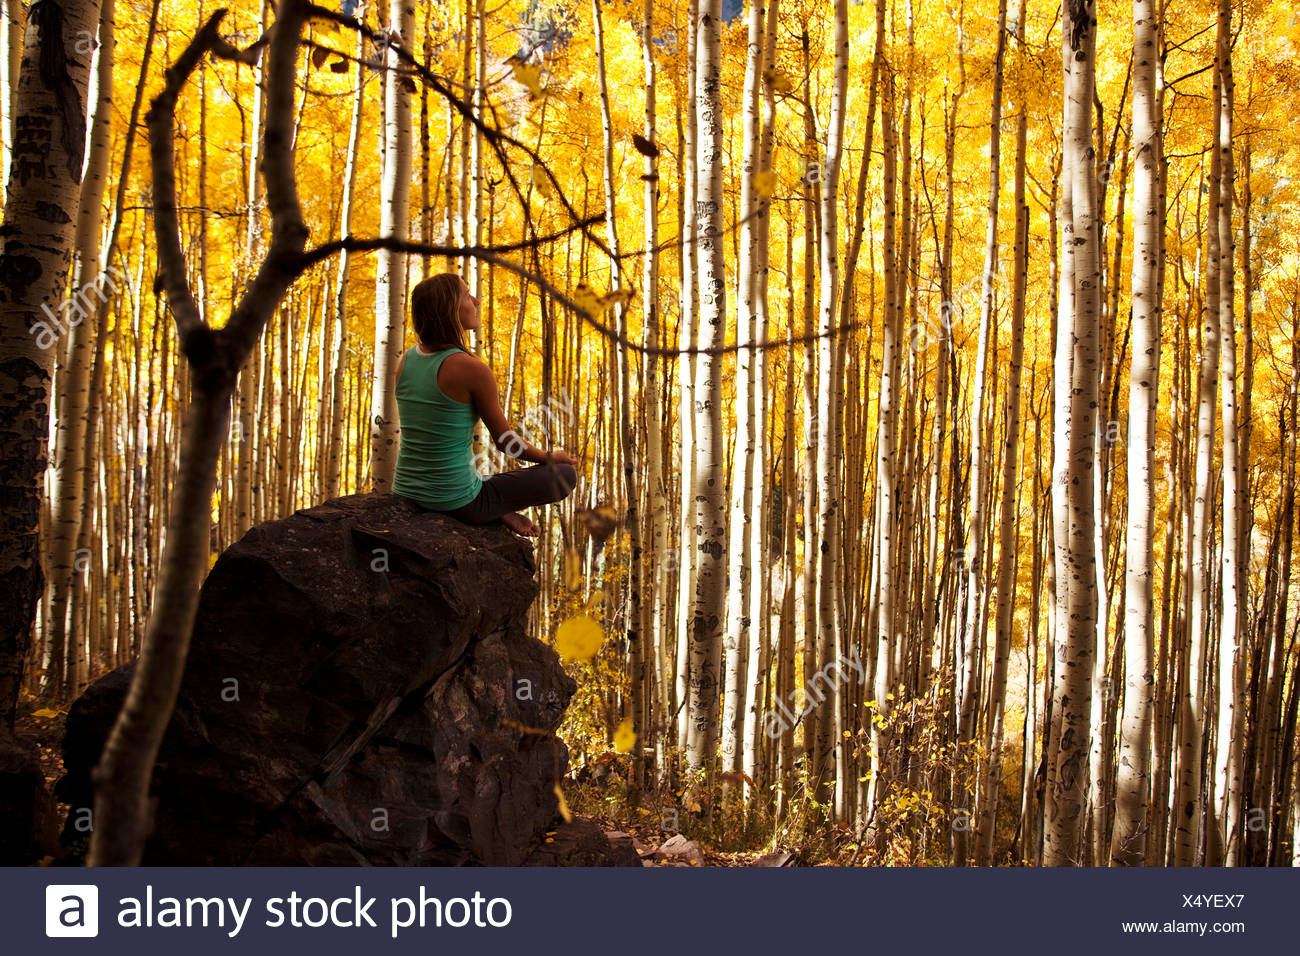 A young woman meditates peacefully on a rock in the midst of a sea of gold leaves. - Stock Image